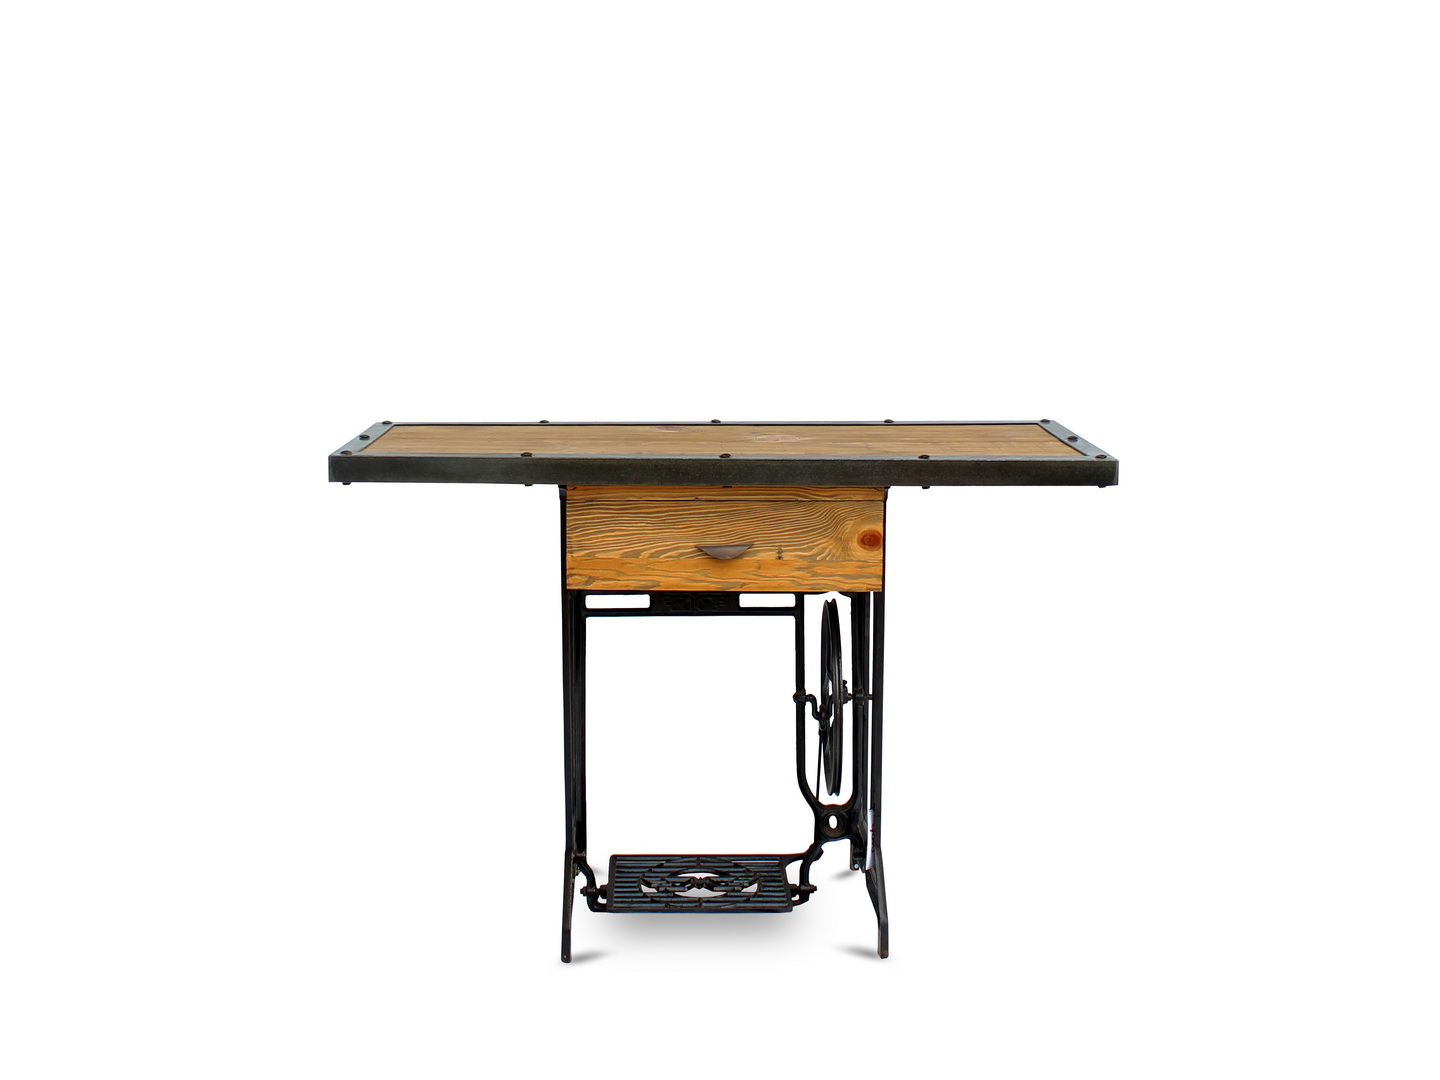 elwell_02_console_table_yuni_bali_furniture_manufacturer_exporter_bali_furniture_shop